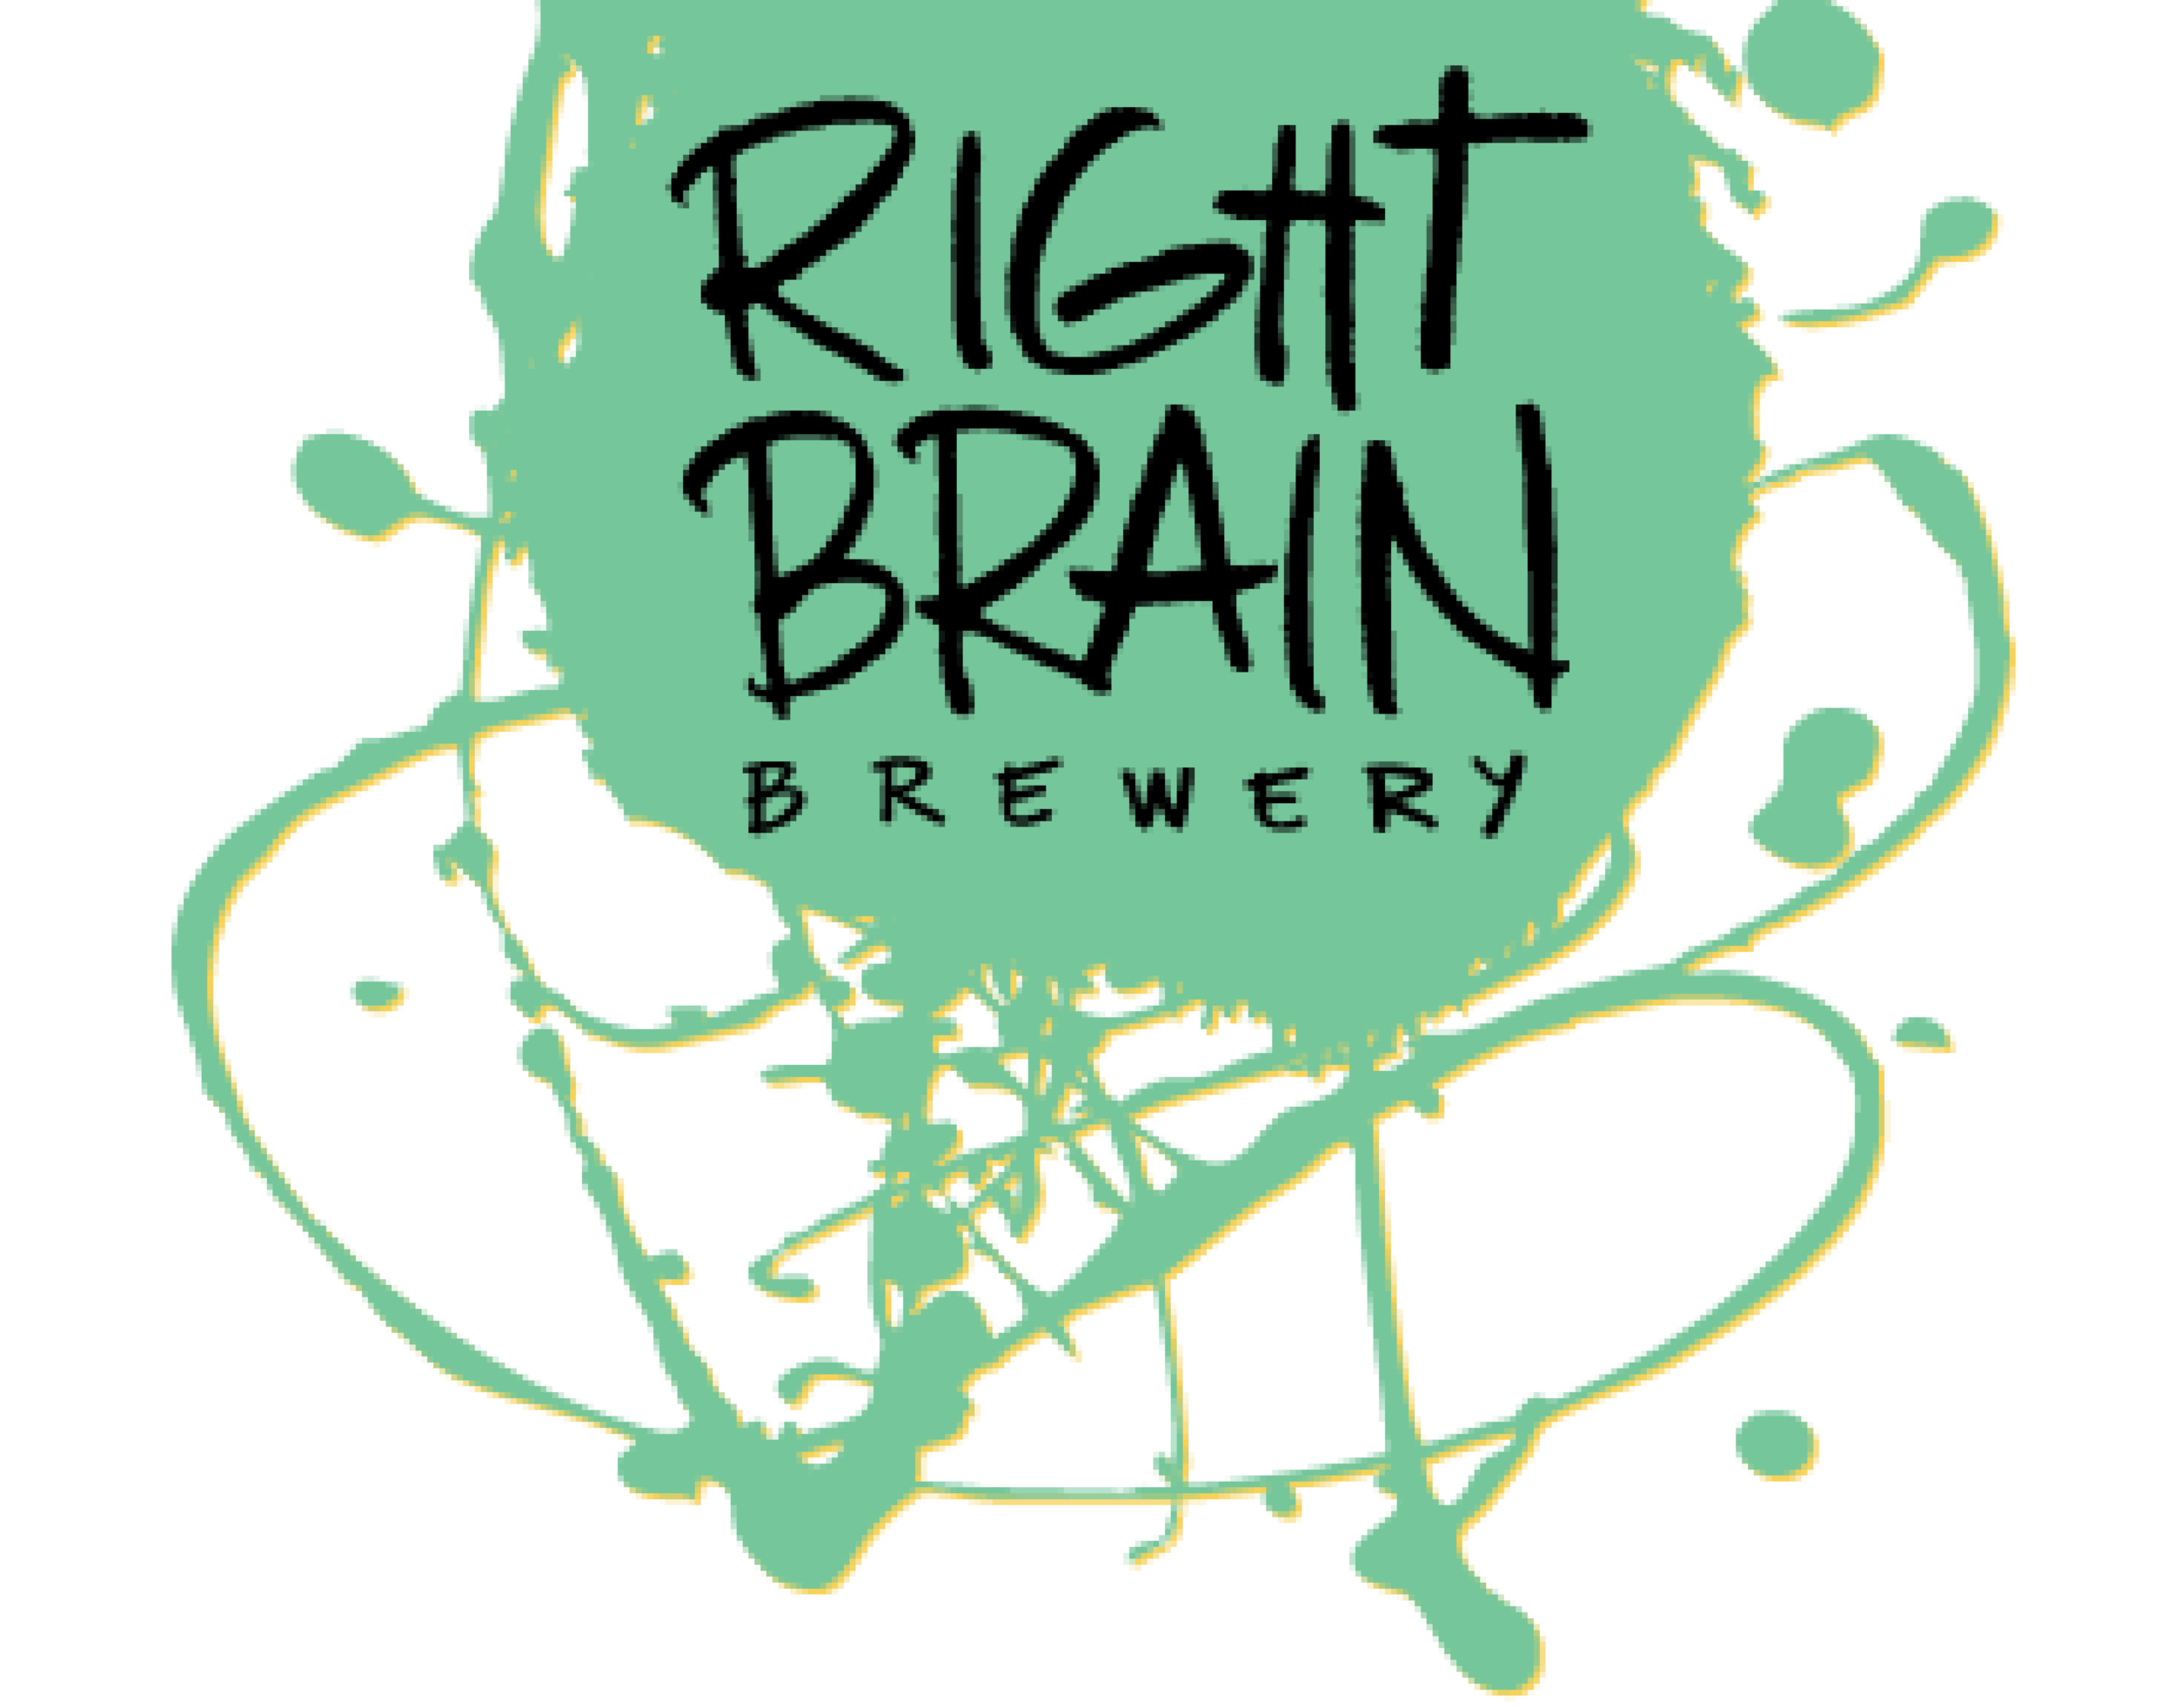 Right Brain Brewery logo. Links to Right Brain Brewery website.